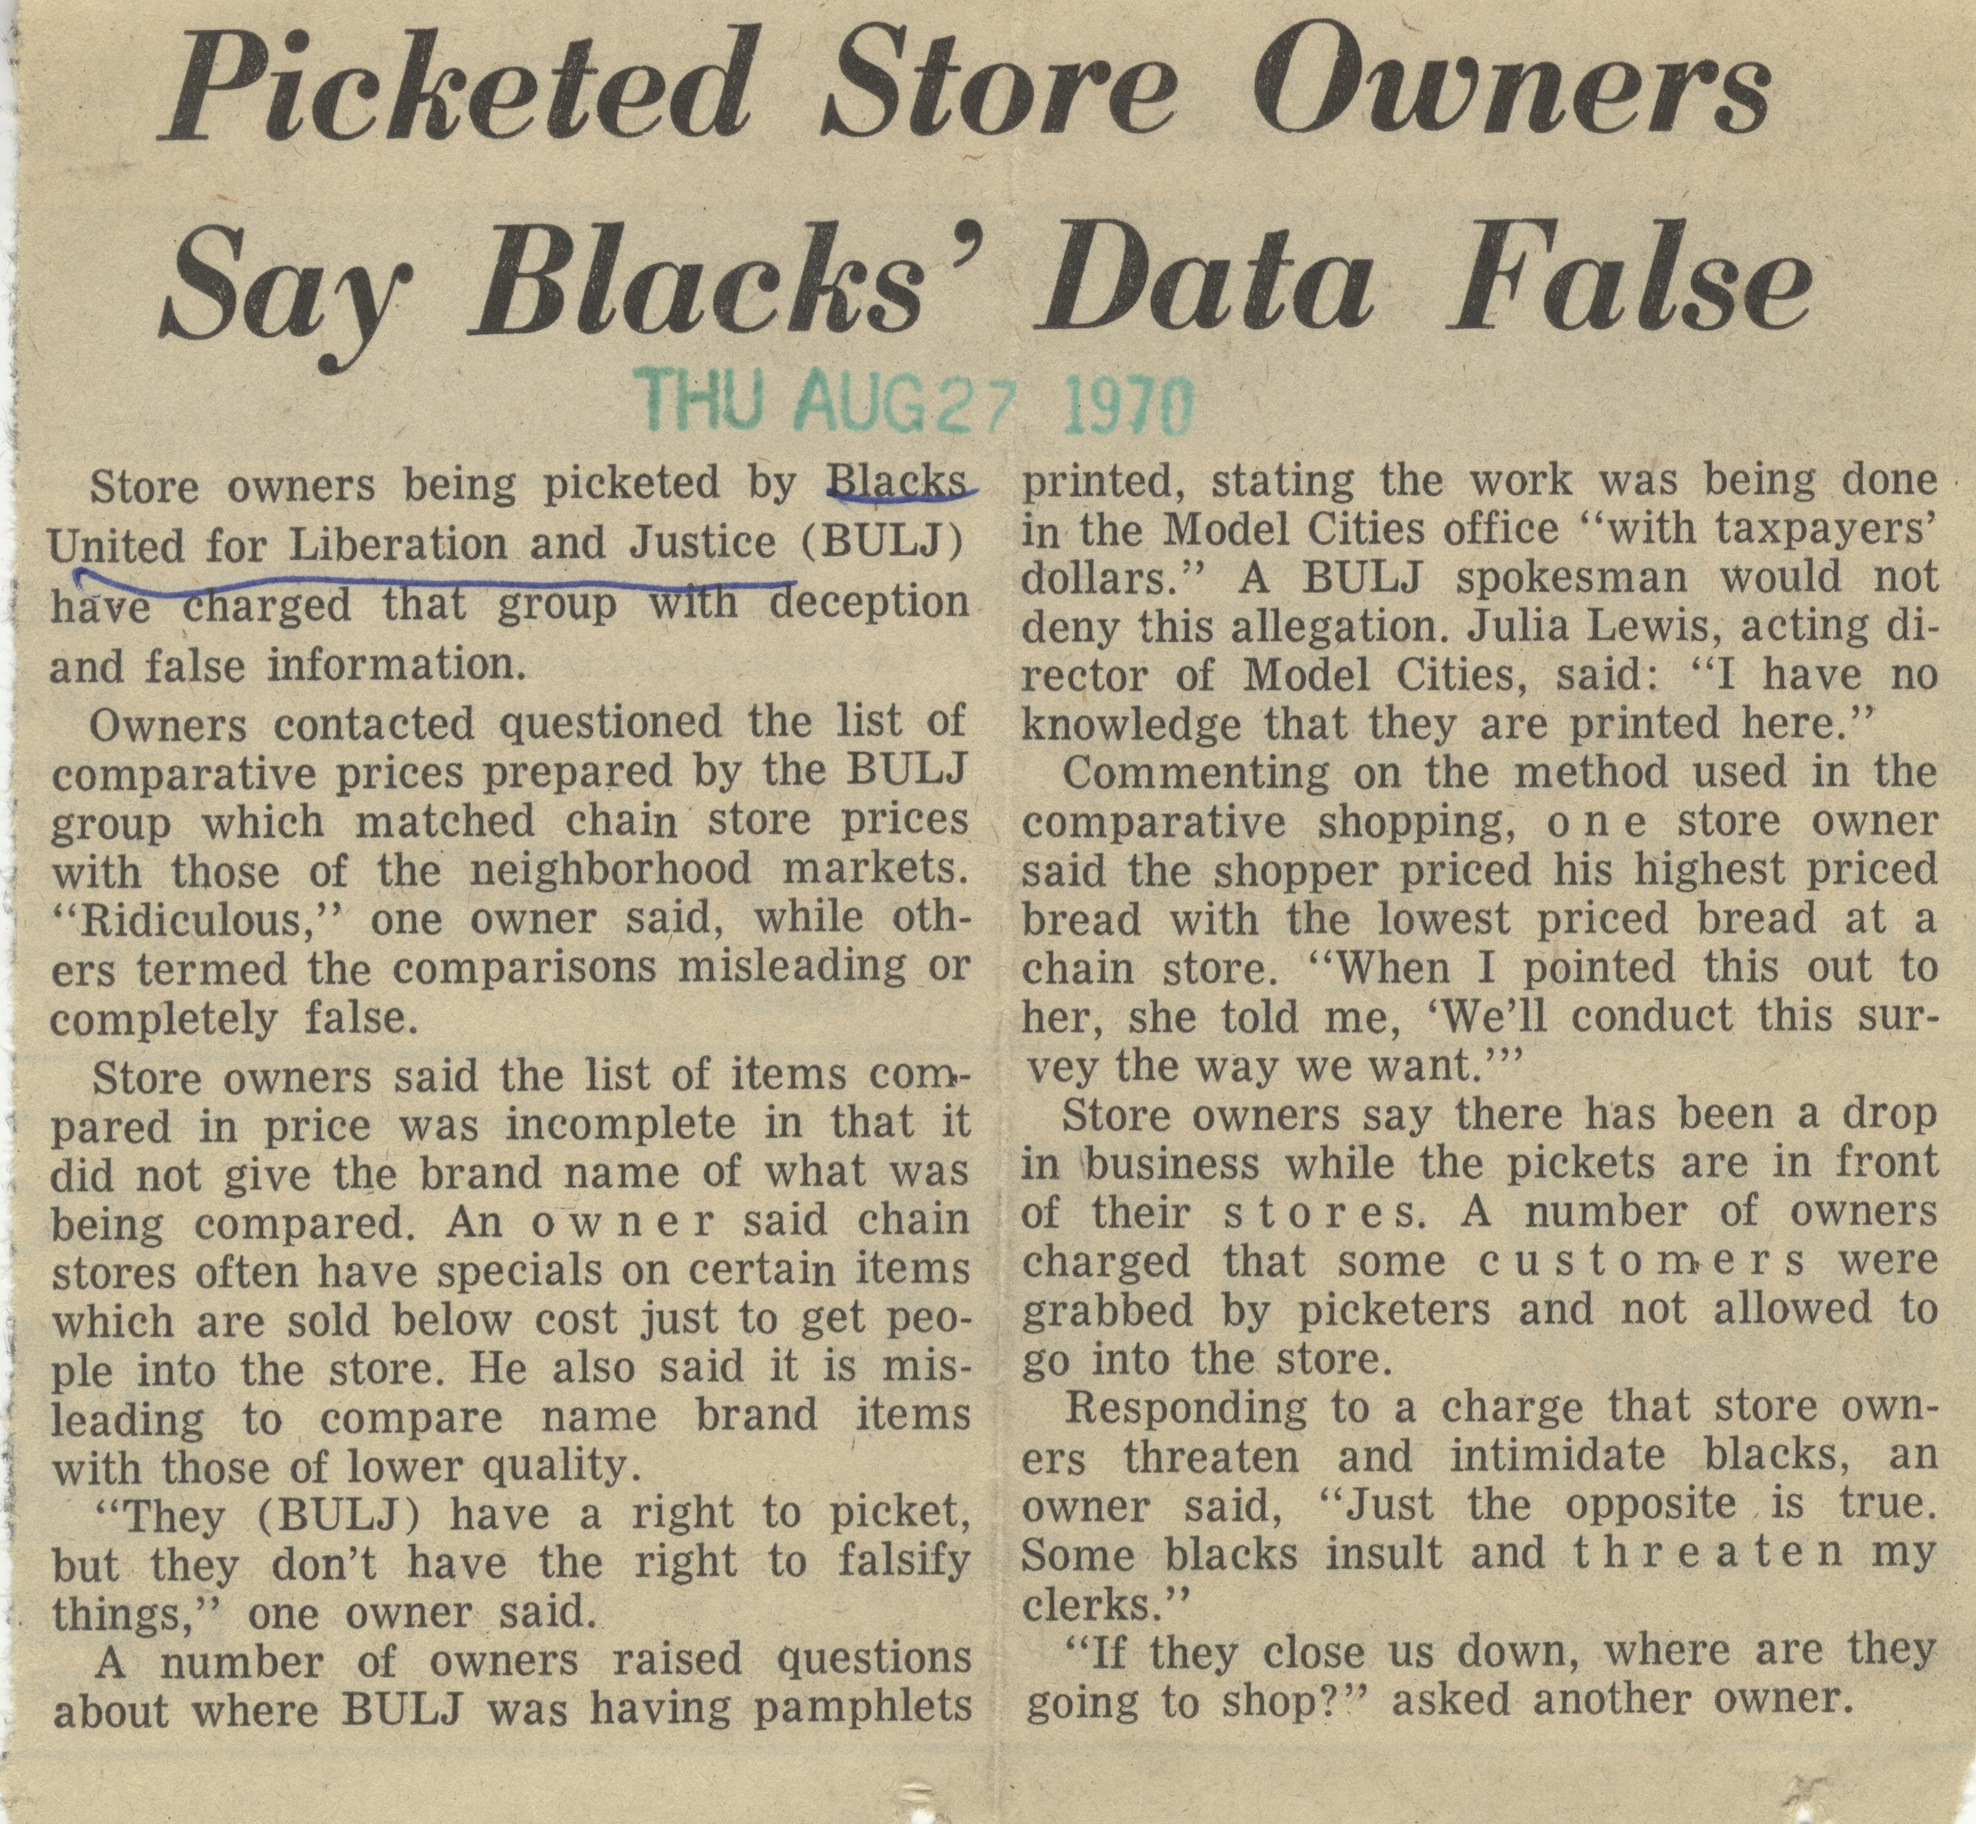 Picketed Store Owners Say Blacks' Data False image